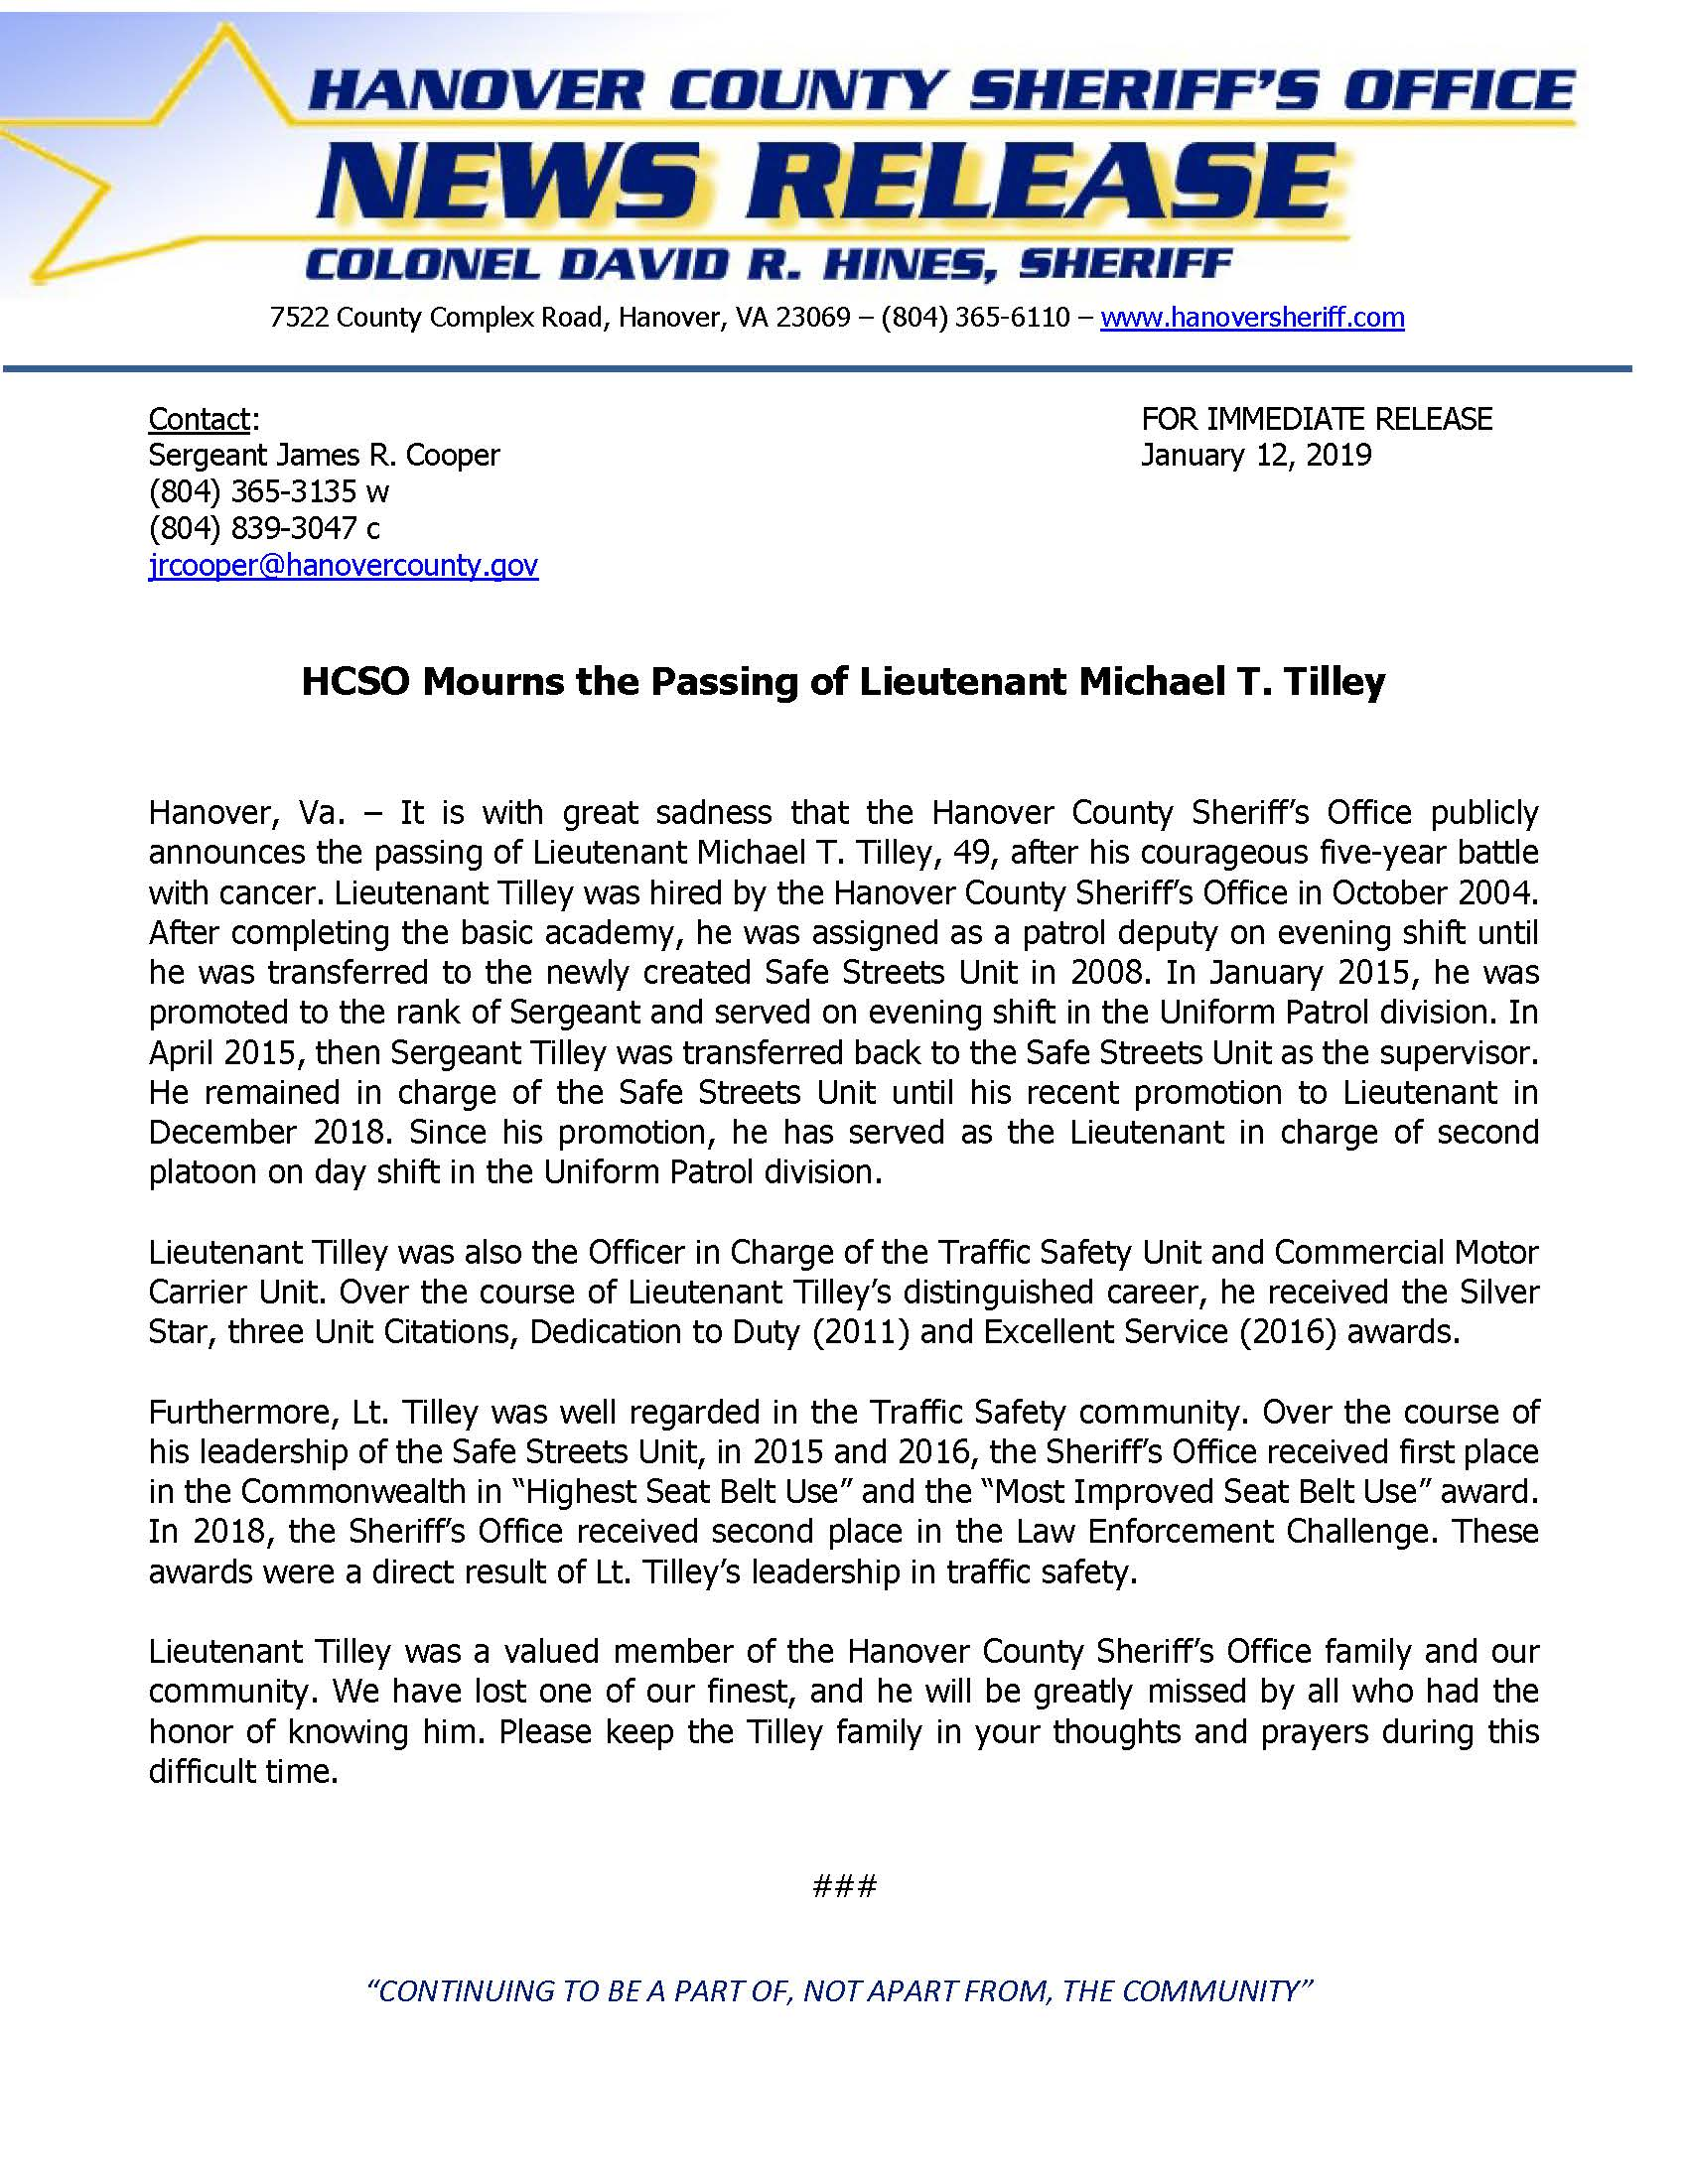 HCSO - Lieutenant Michael T. Tilley- January 12, 2019